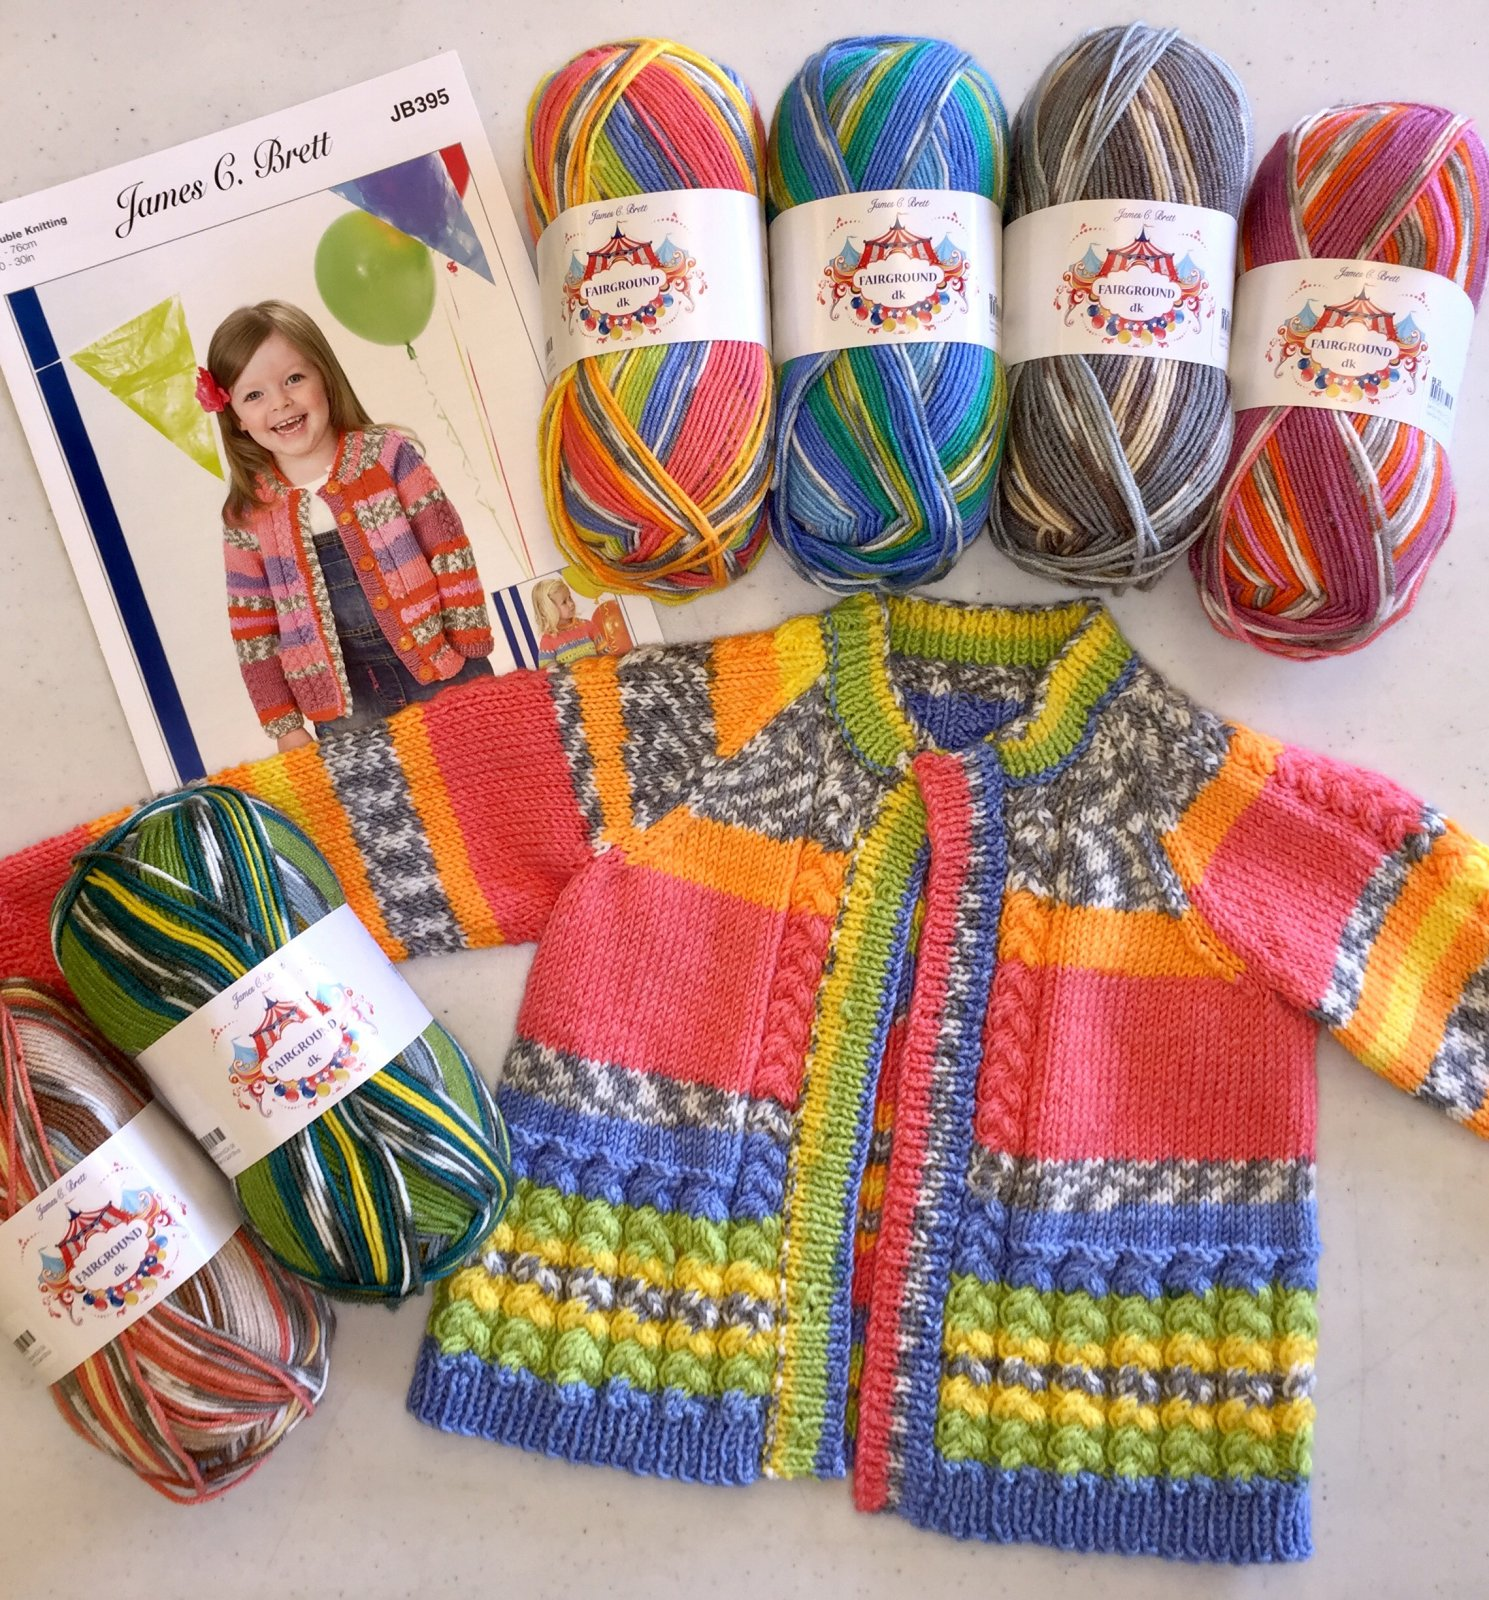 Fairground James C Brett Pattern JB395 Children's Sweater